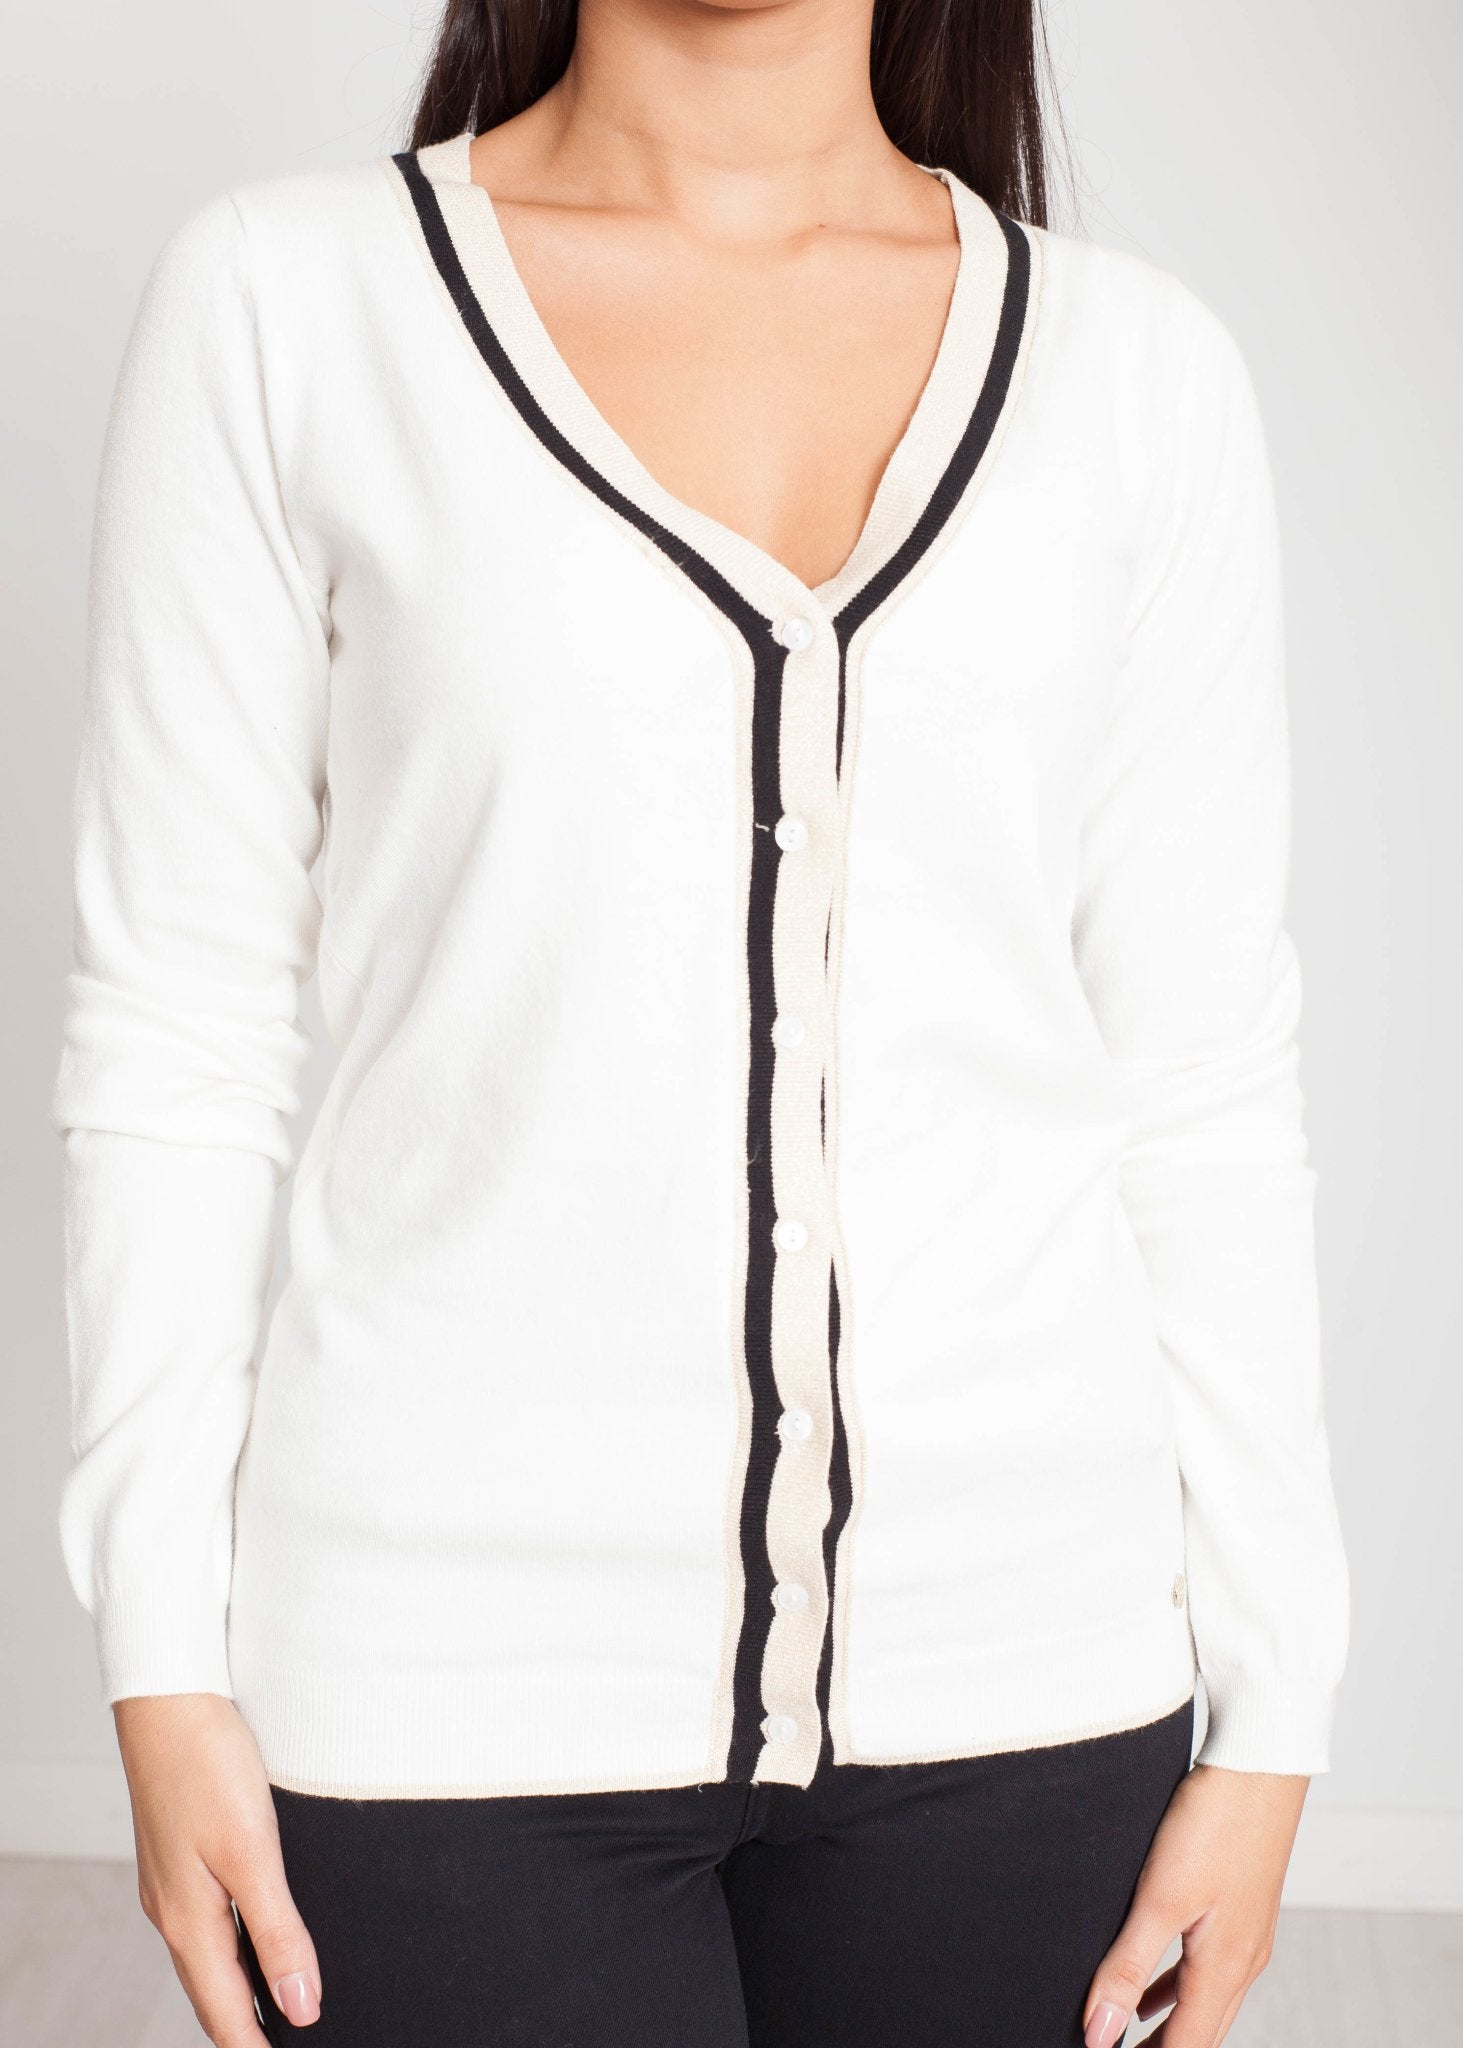 Faye V-Neck Cardigan In Winter White - The Walk in Wardrobe